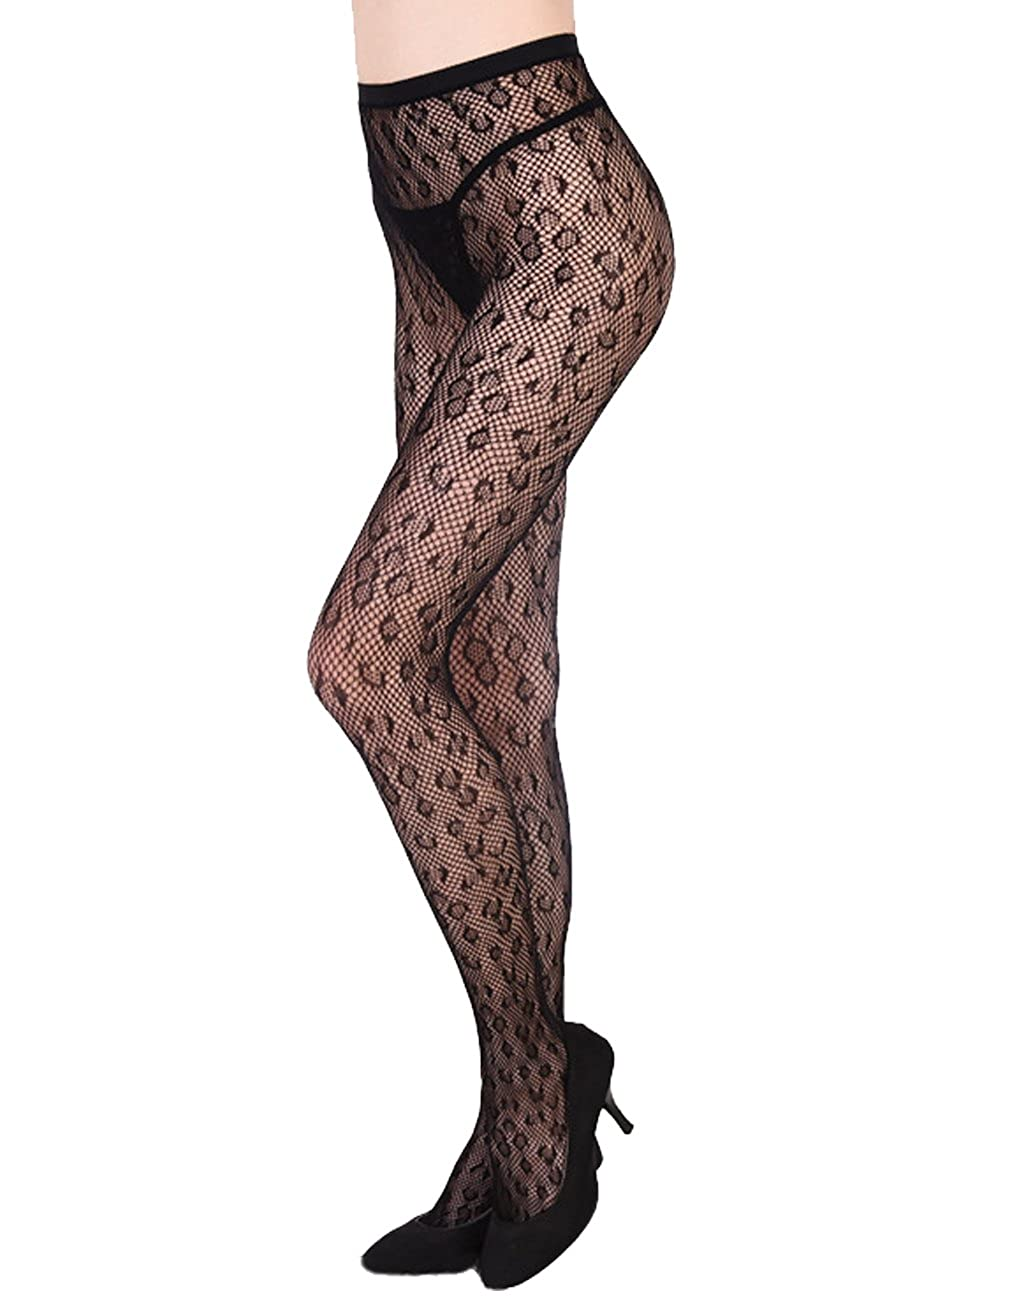 Fishnet Pantyhose Women's Lace High Waist Tights Stockings Mesh Panty Hose Lookswe-us-20180110001